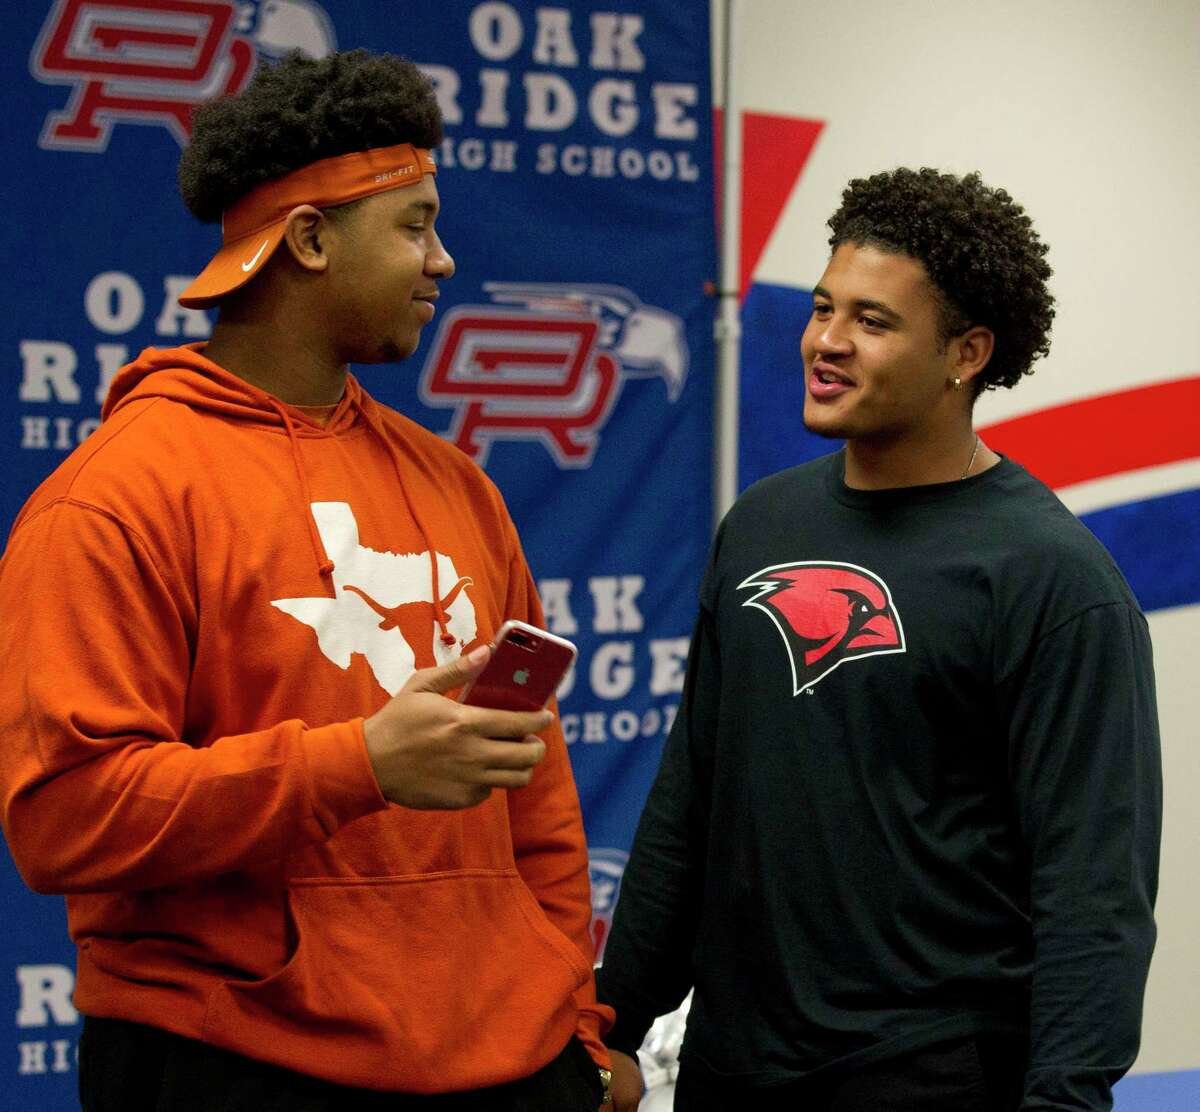 Oak Ridge's Tyler Johnson, left, visits with Darius Richmond during a signing ceremony at Oak Ridge High School, Wednesday, Dec. 19, 2018, in Oak Ridge. Johnson signed to play football for Texas, while Richmond signed with Incarnate Word.